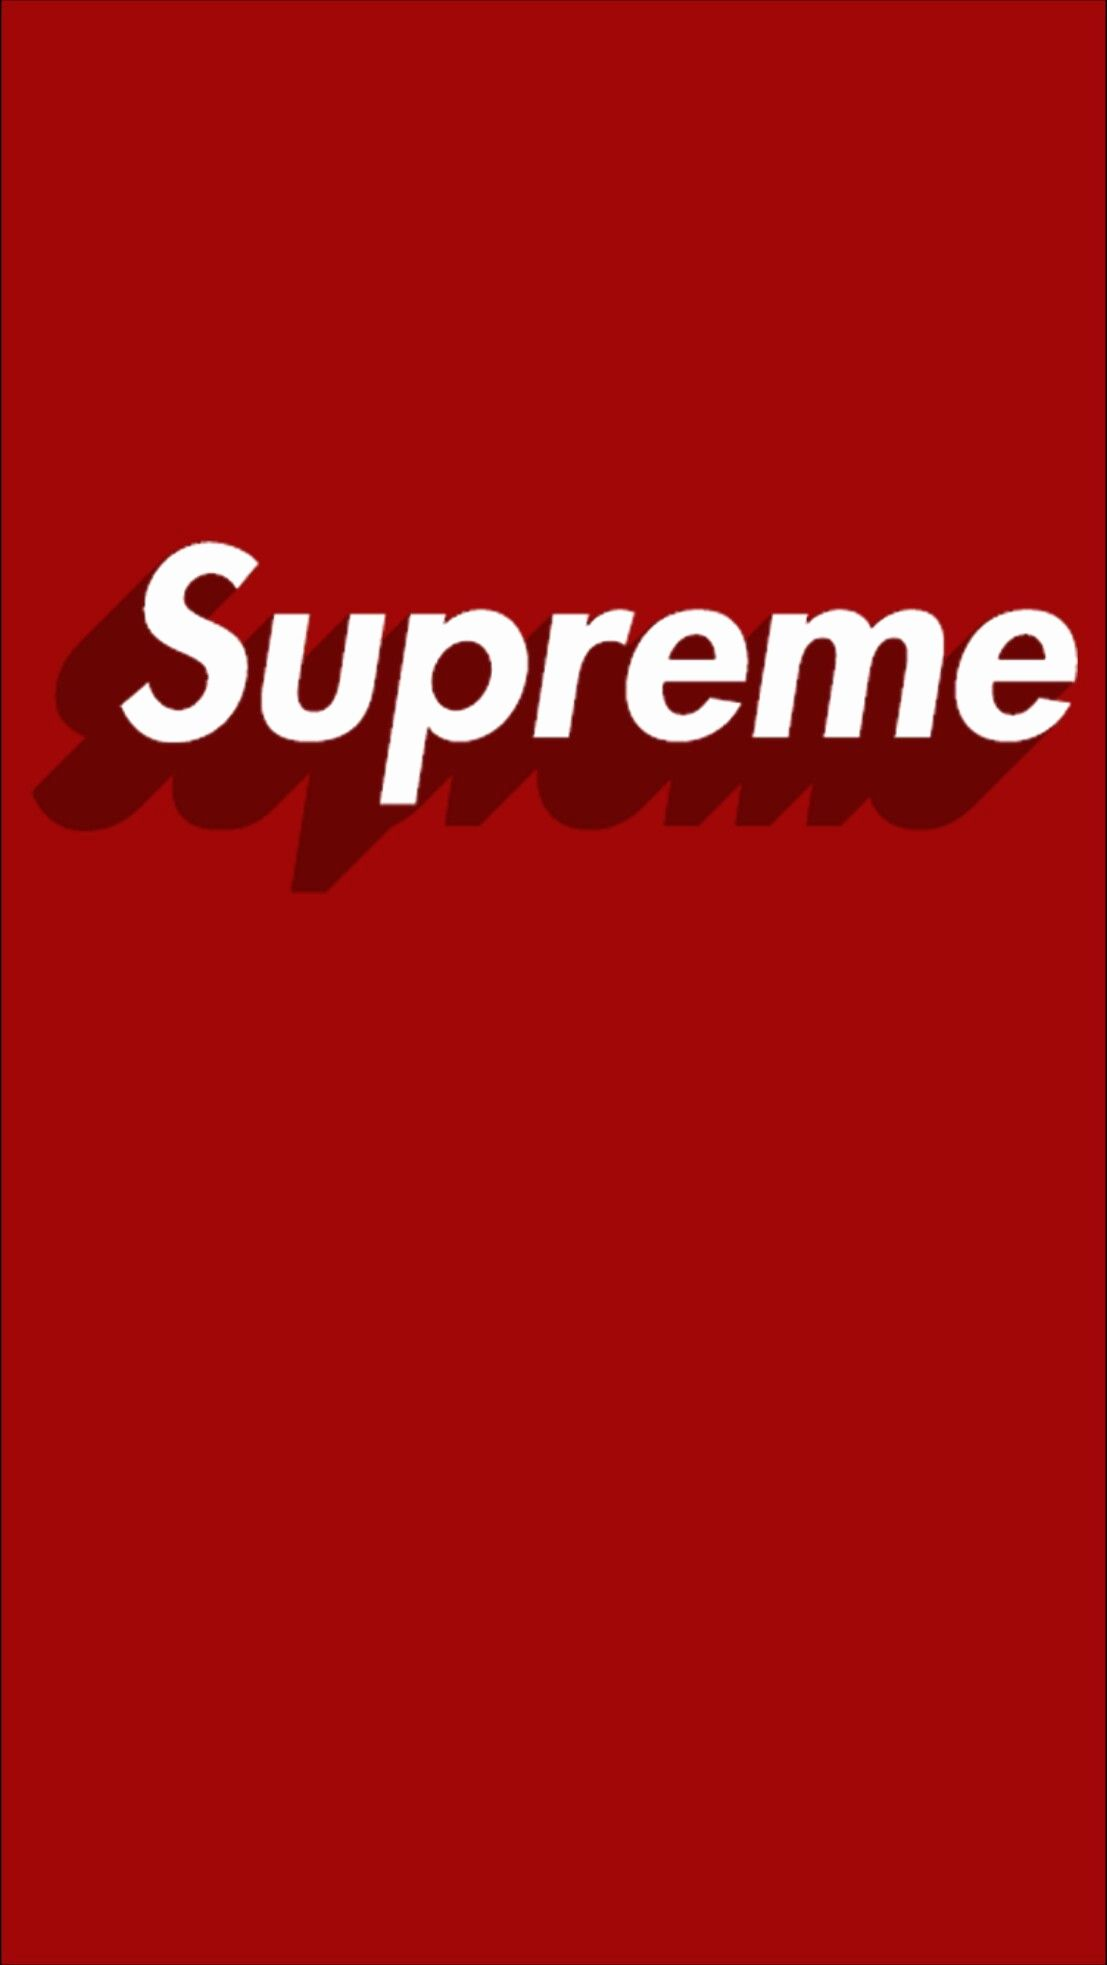 Supreme Lv Desktop Wallpaper Scale